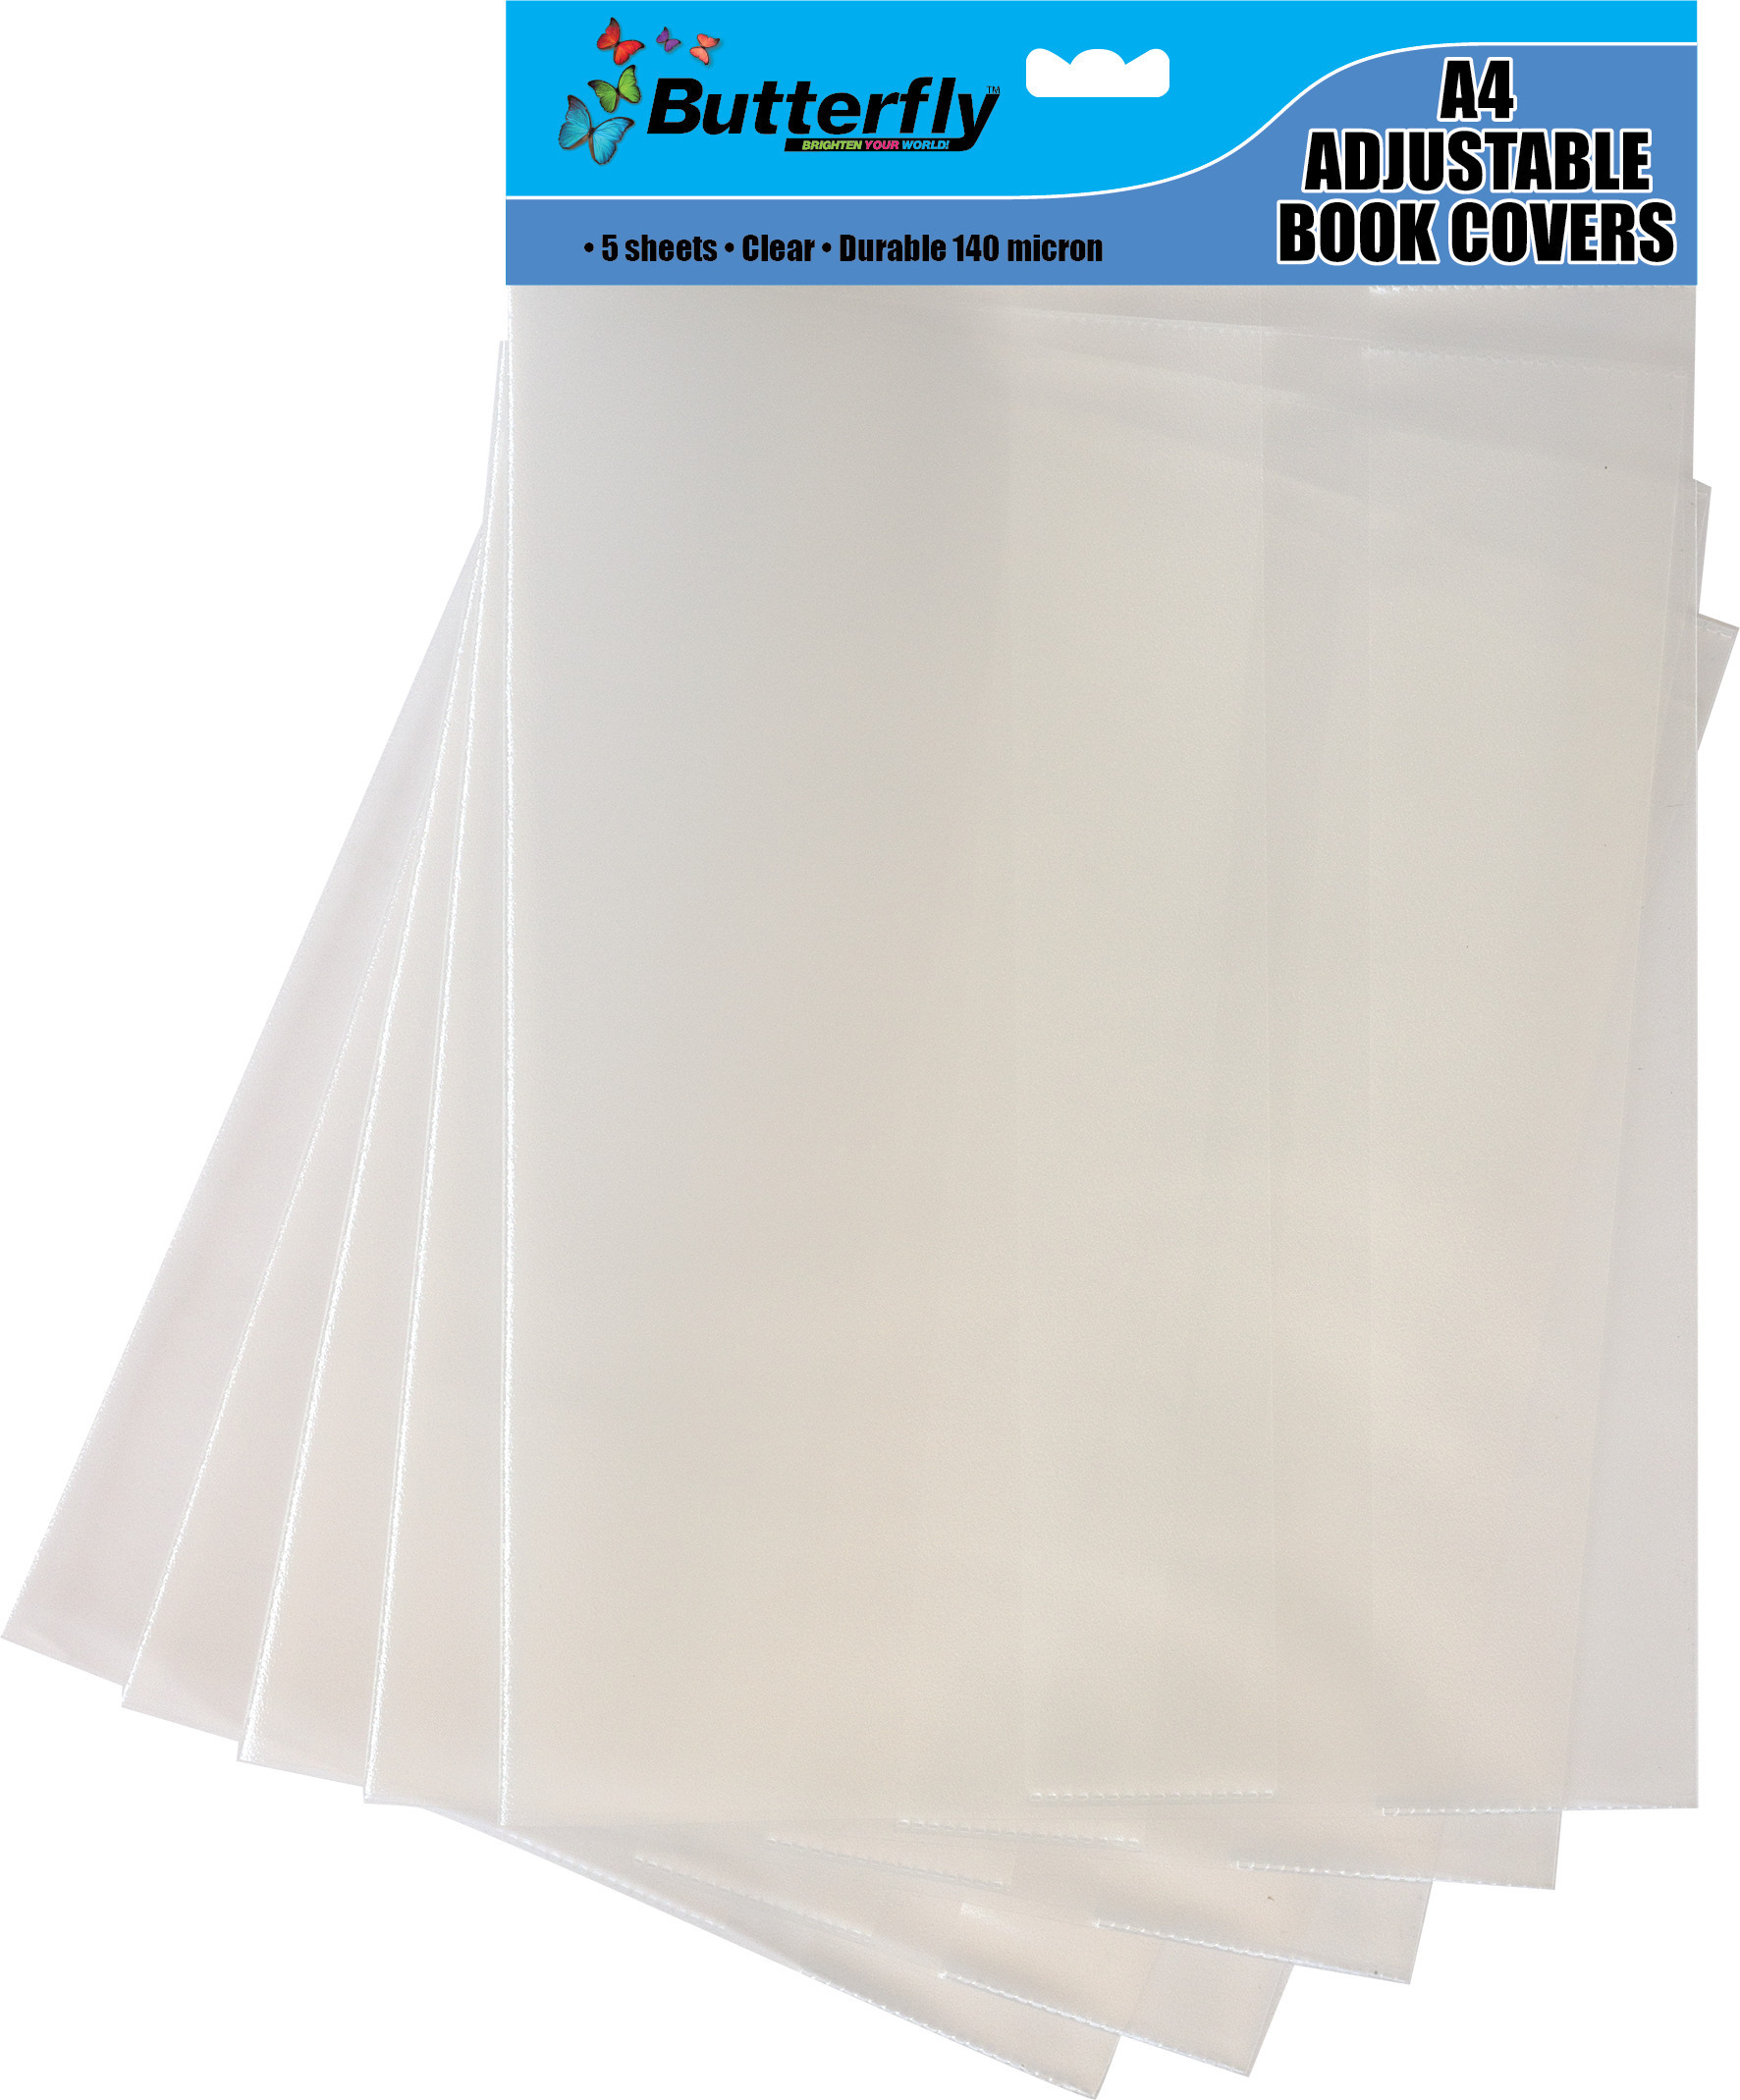 A4 Adjustable Book Covers - 5 Pack 140 Micron